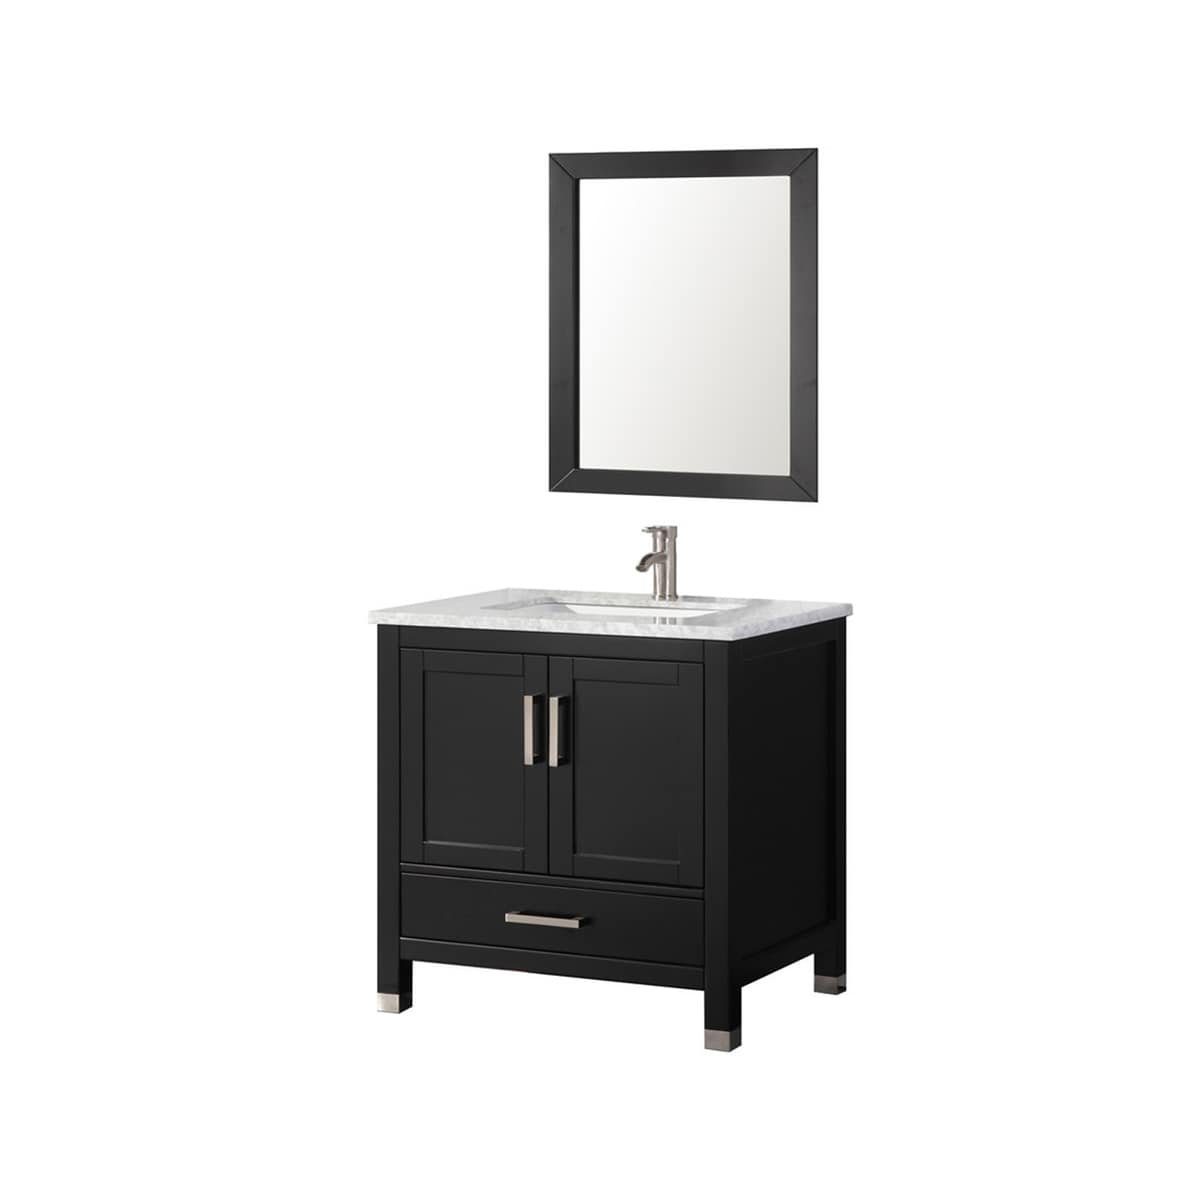 Amazon.com: Belvedere Bath 30 inch Belvedere Espresso Bathroom ...